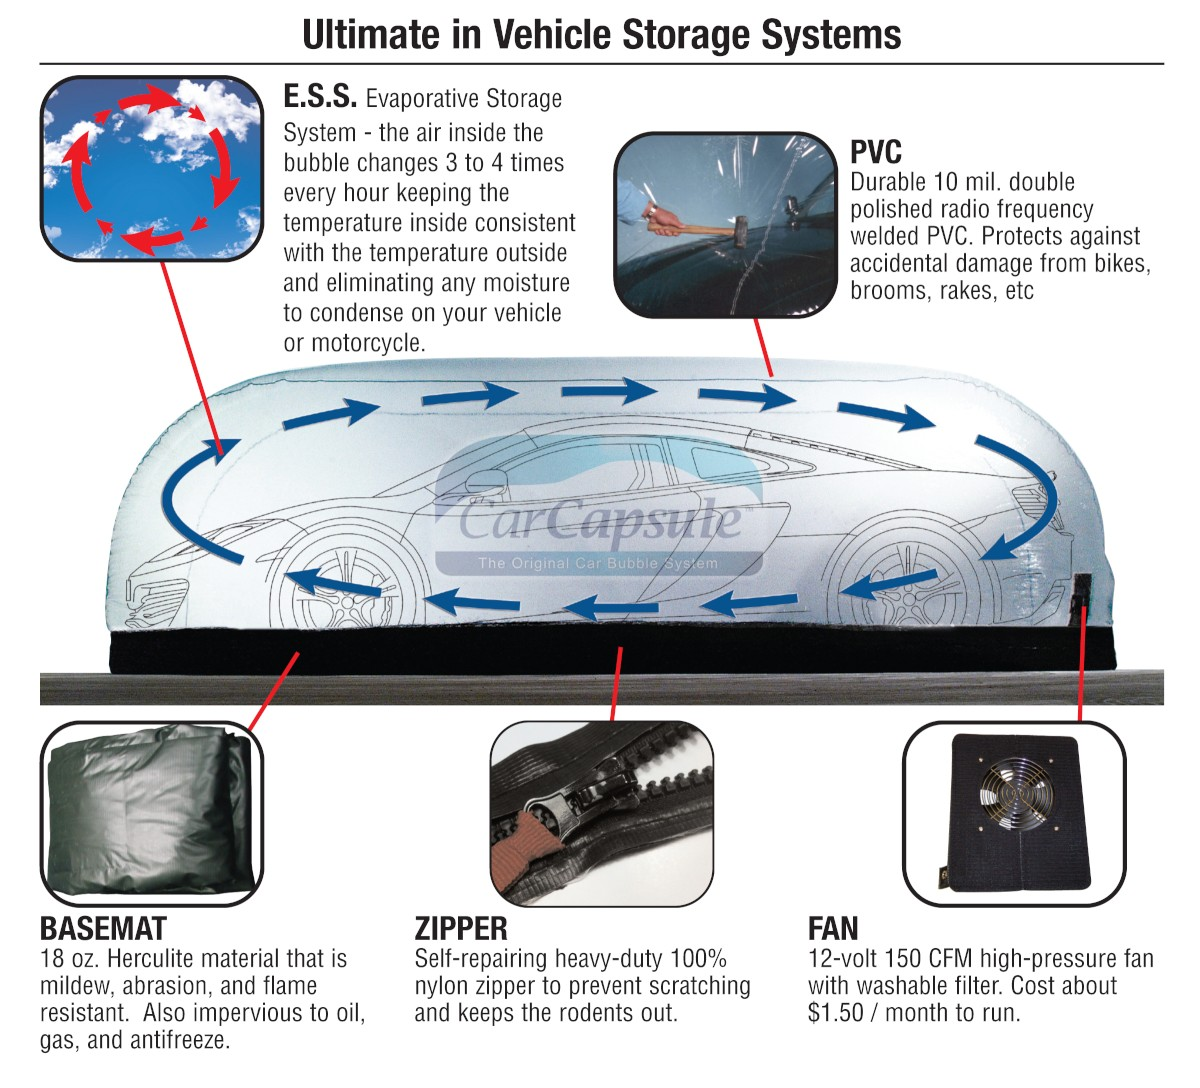 CarCapsule_flow_how_it_works02_10